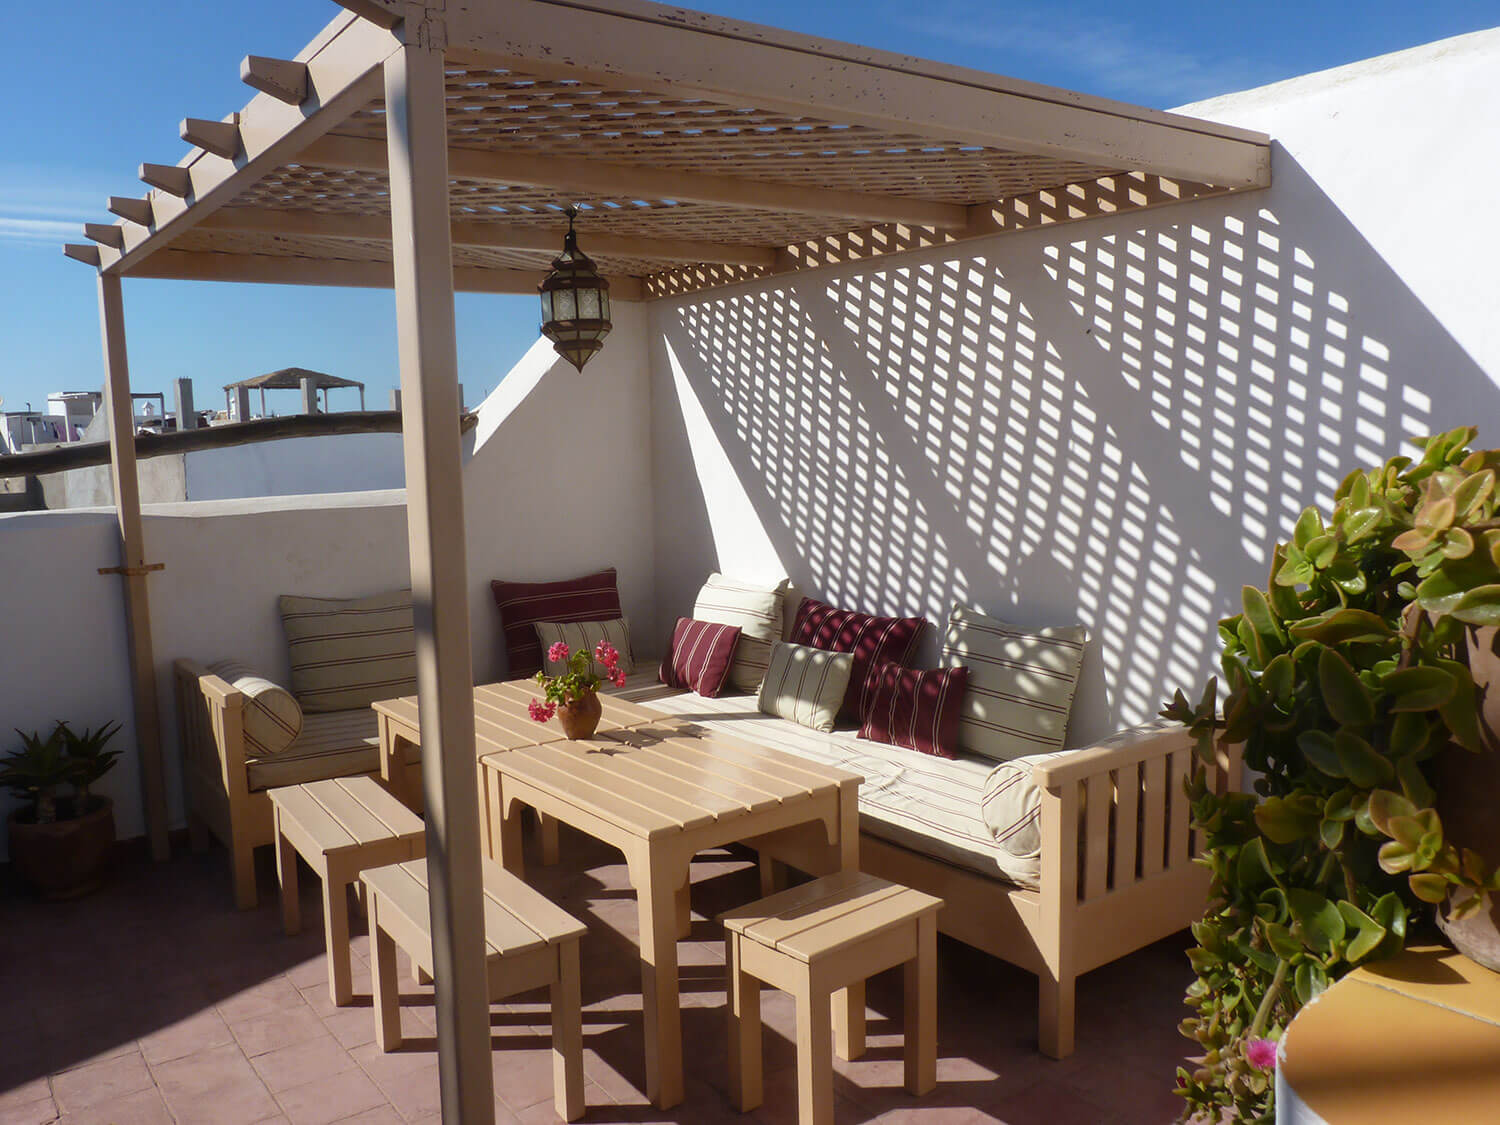 The rooftop chillout area at Villa Garance - a riad in the  heart of Essaouira